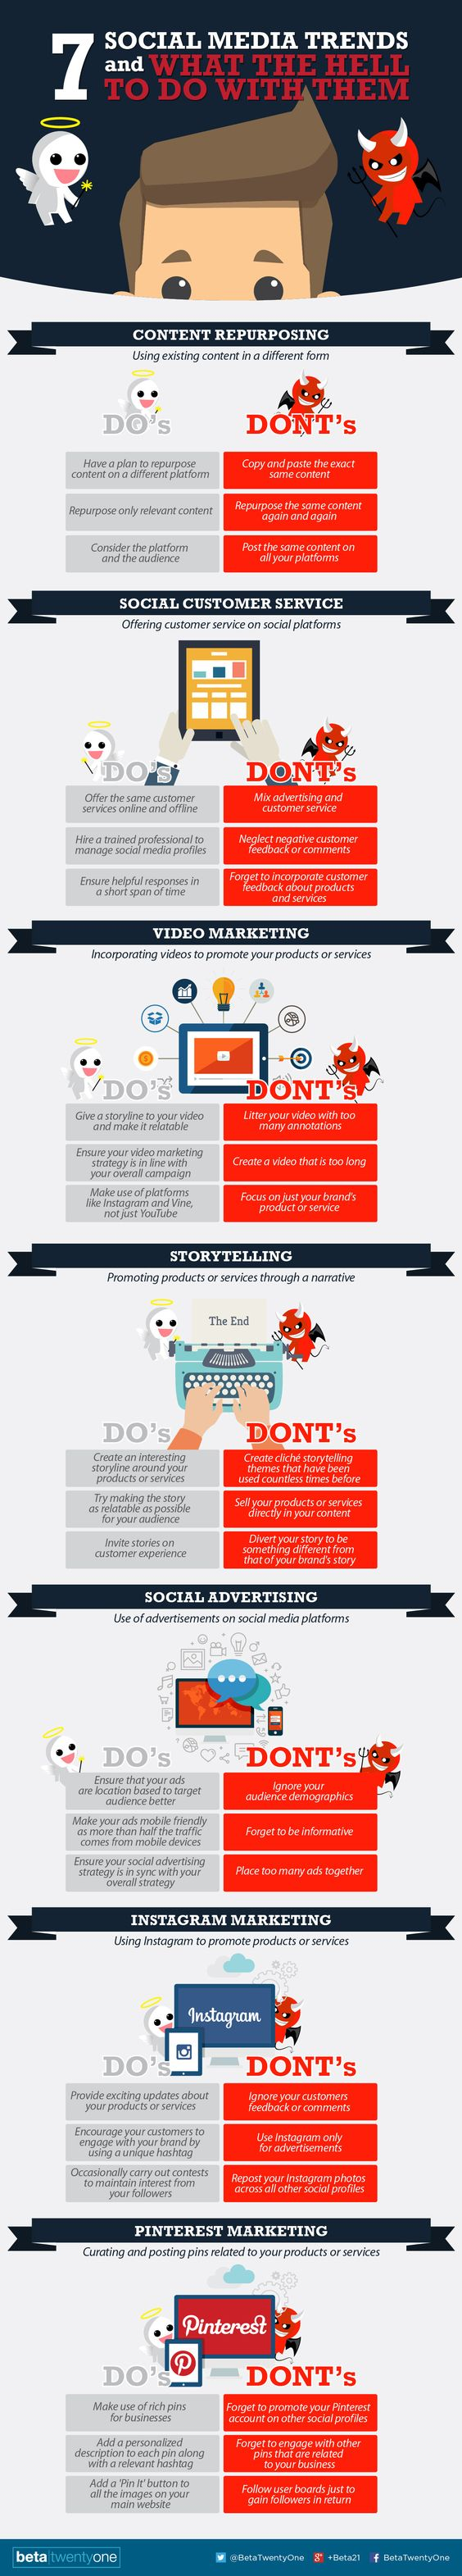 7 Social Media Trends and What The Hell To Do With Them - #infographic